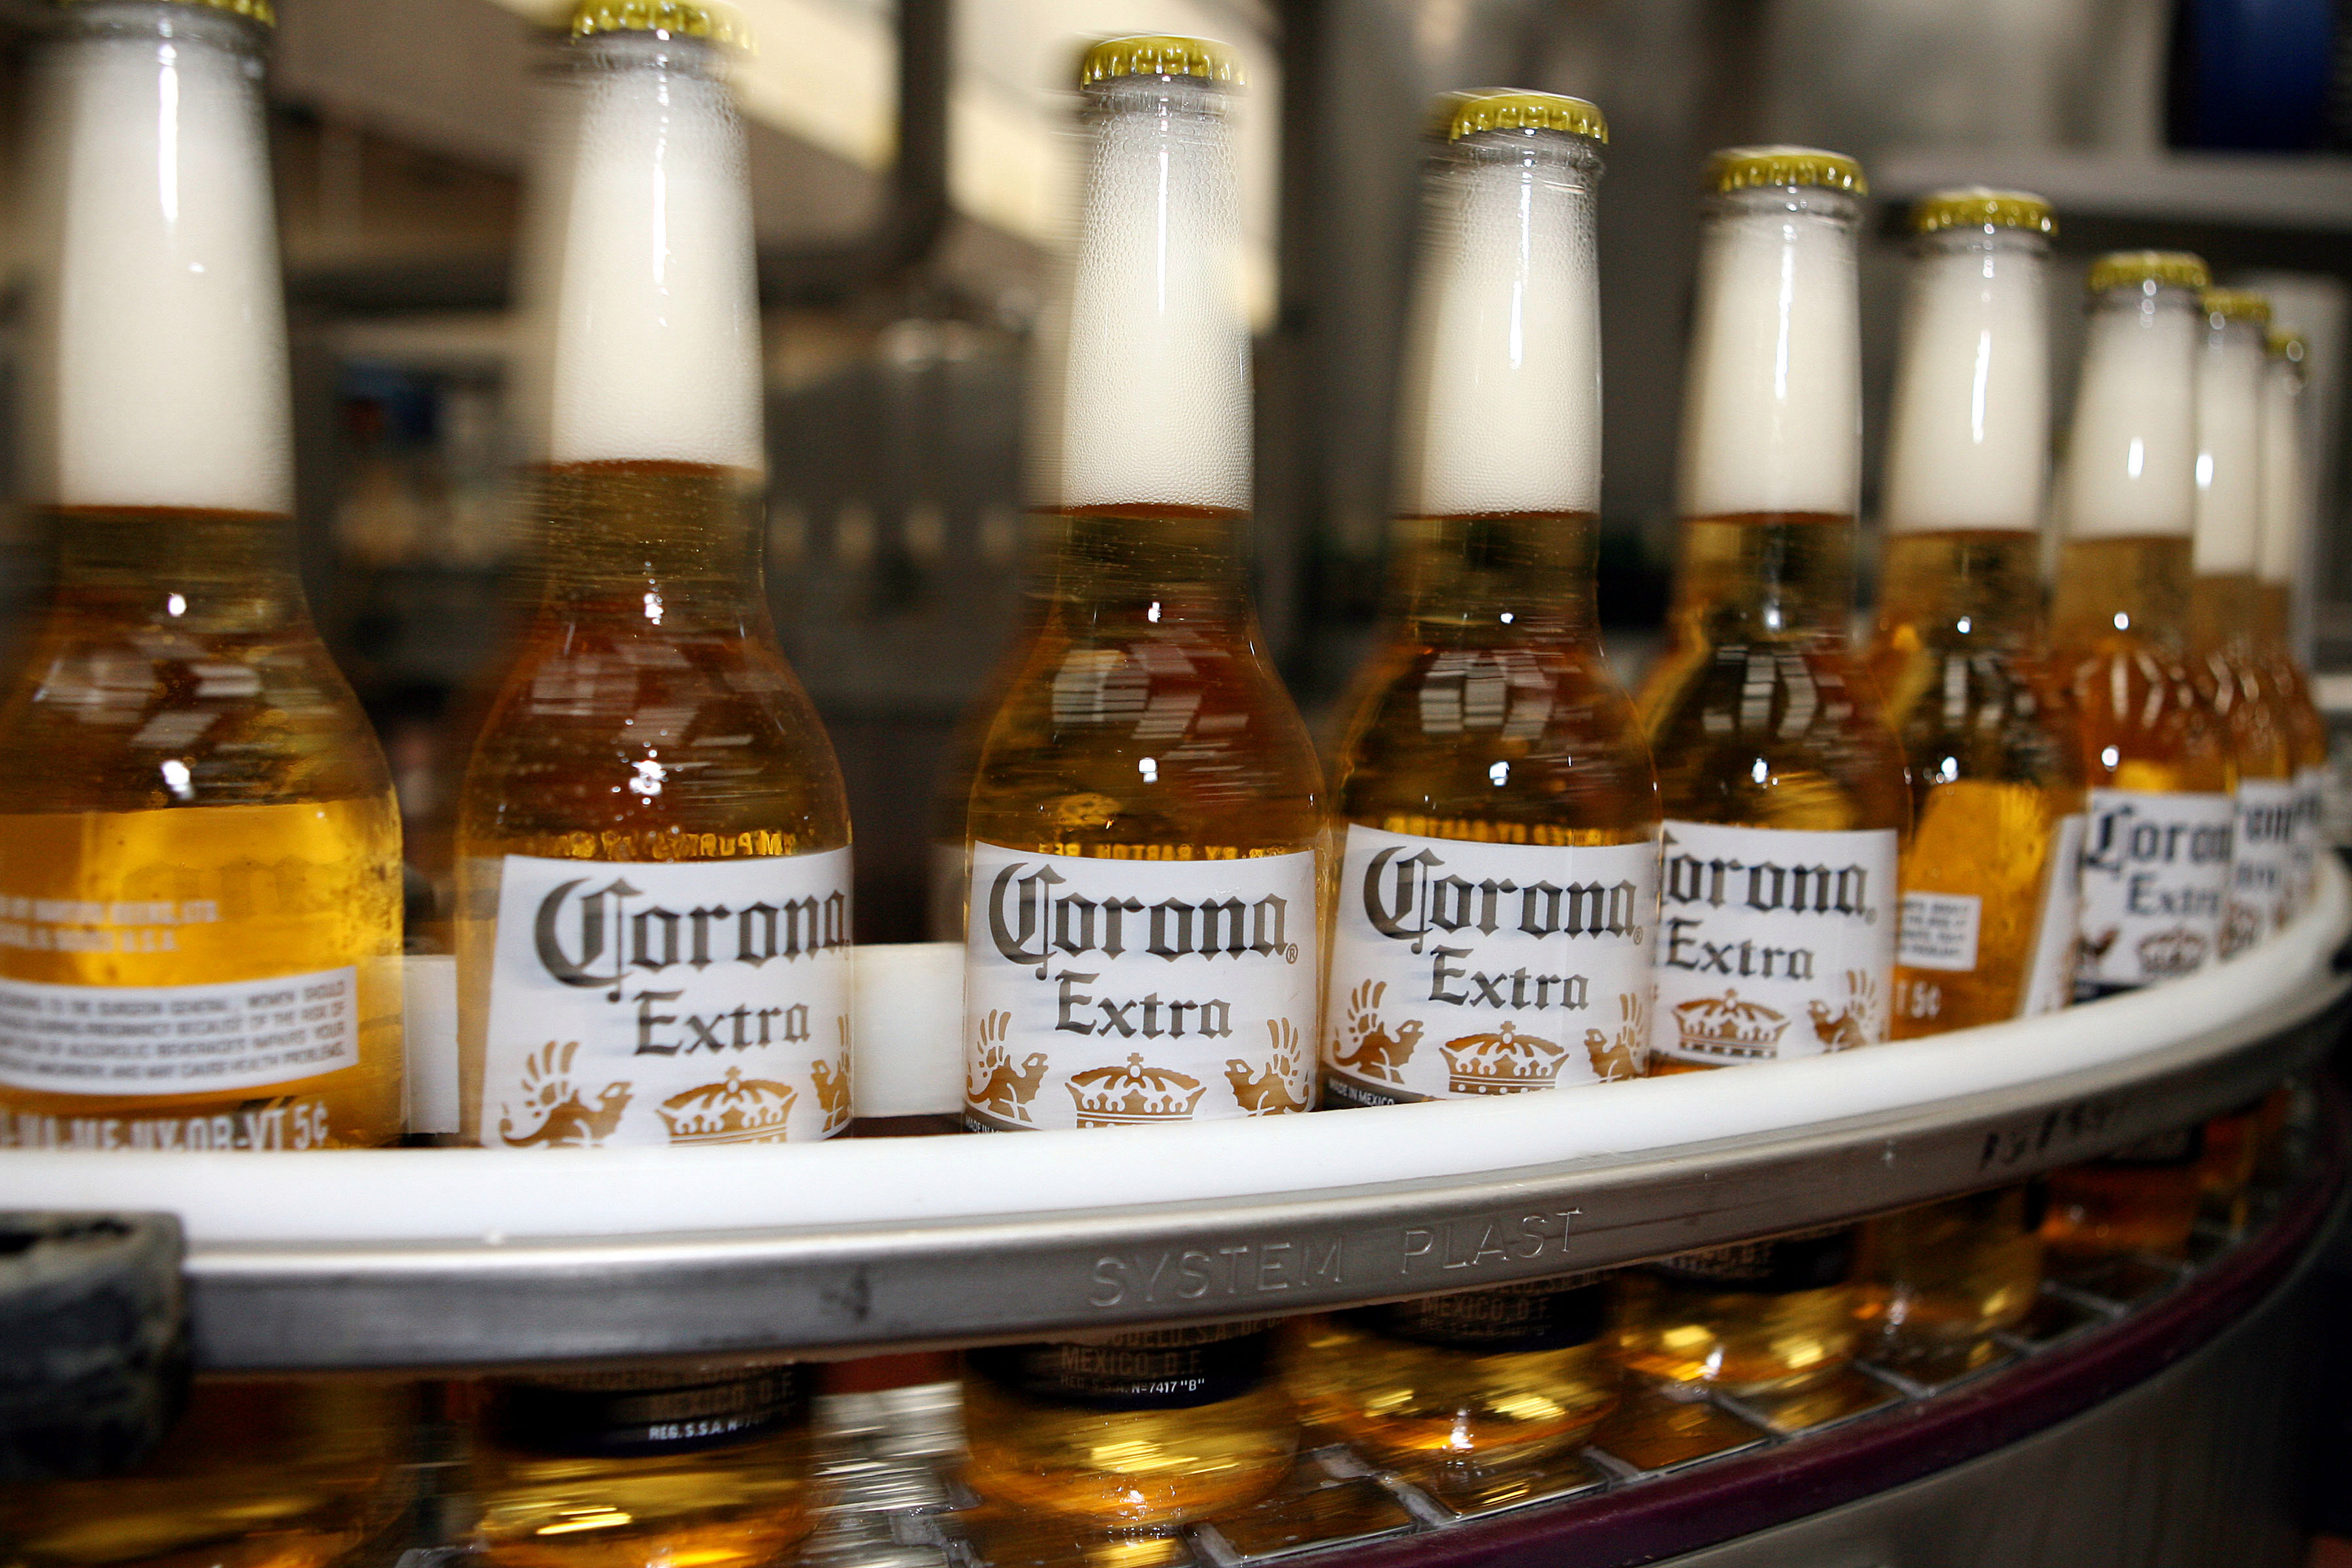 Corona brewer loses $170MILLION caused by drop in sales since outbreak of deadly coronavirus in China - The Sun